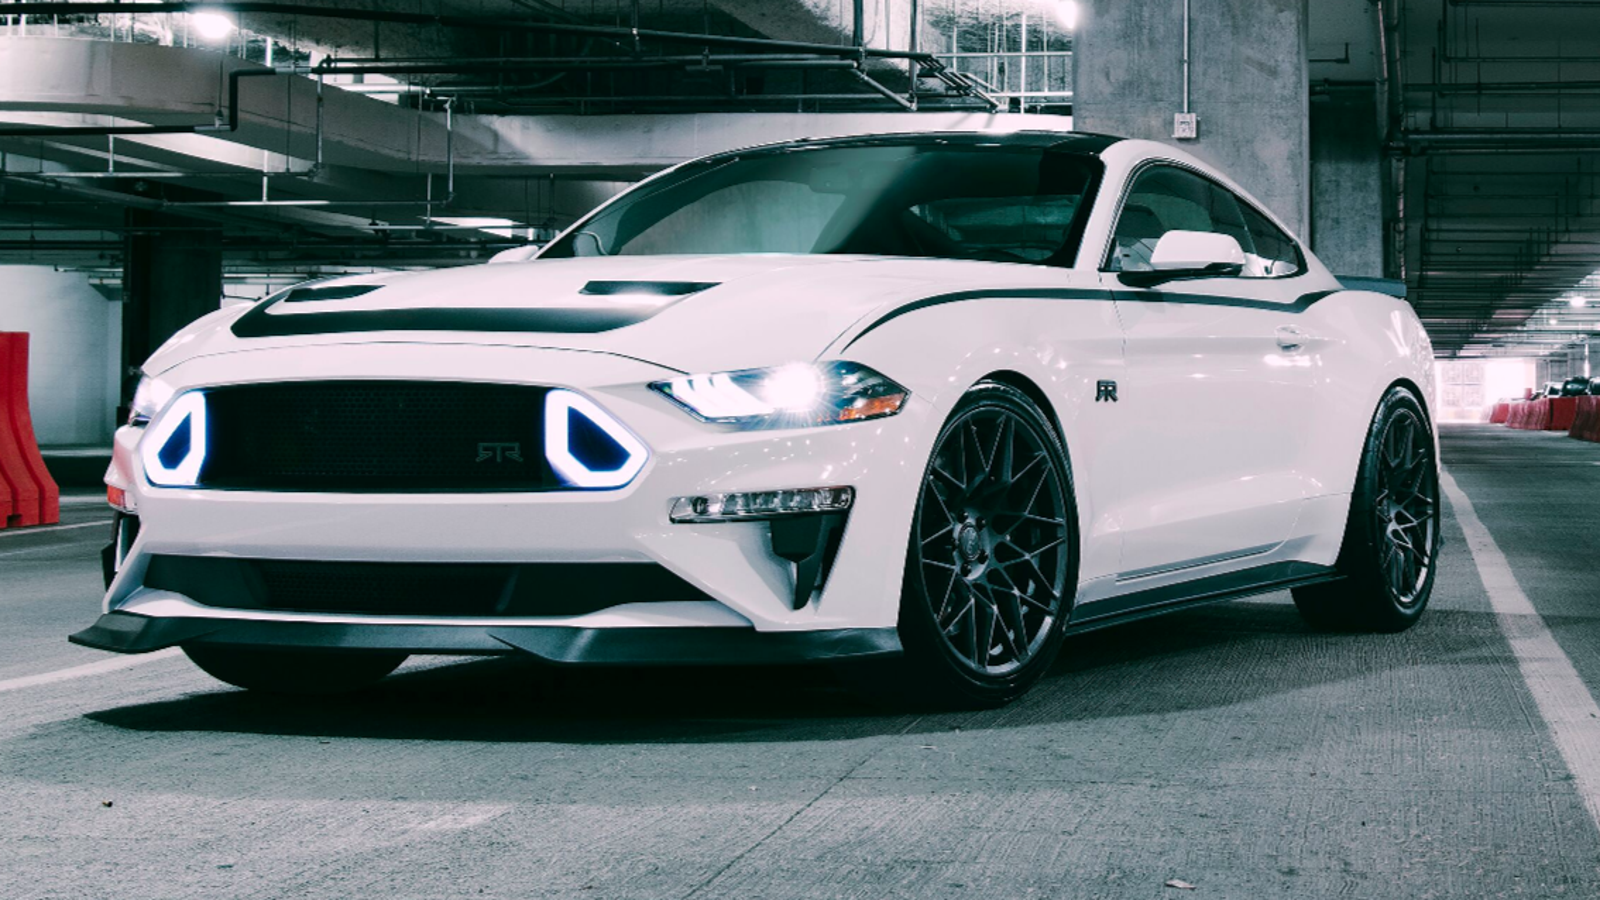 Ford Dealers Will Soon Sell A 700+ Horsepower RTR Mustang With A Warranty